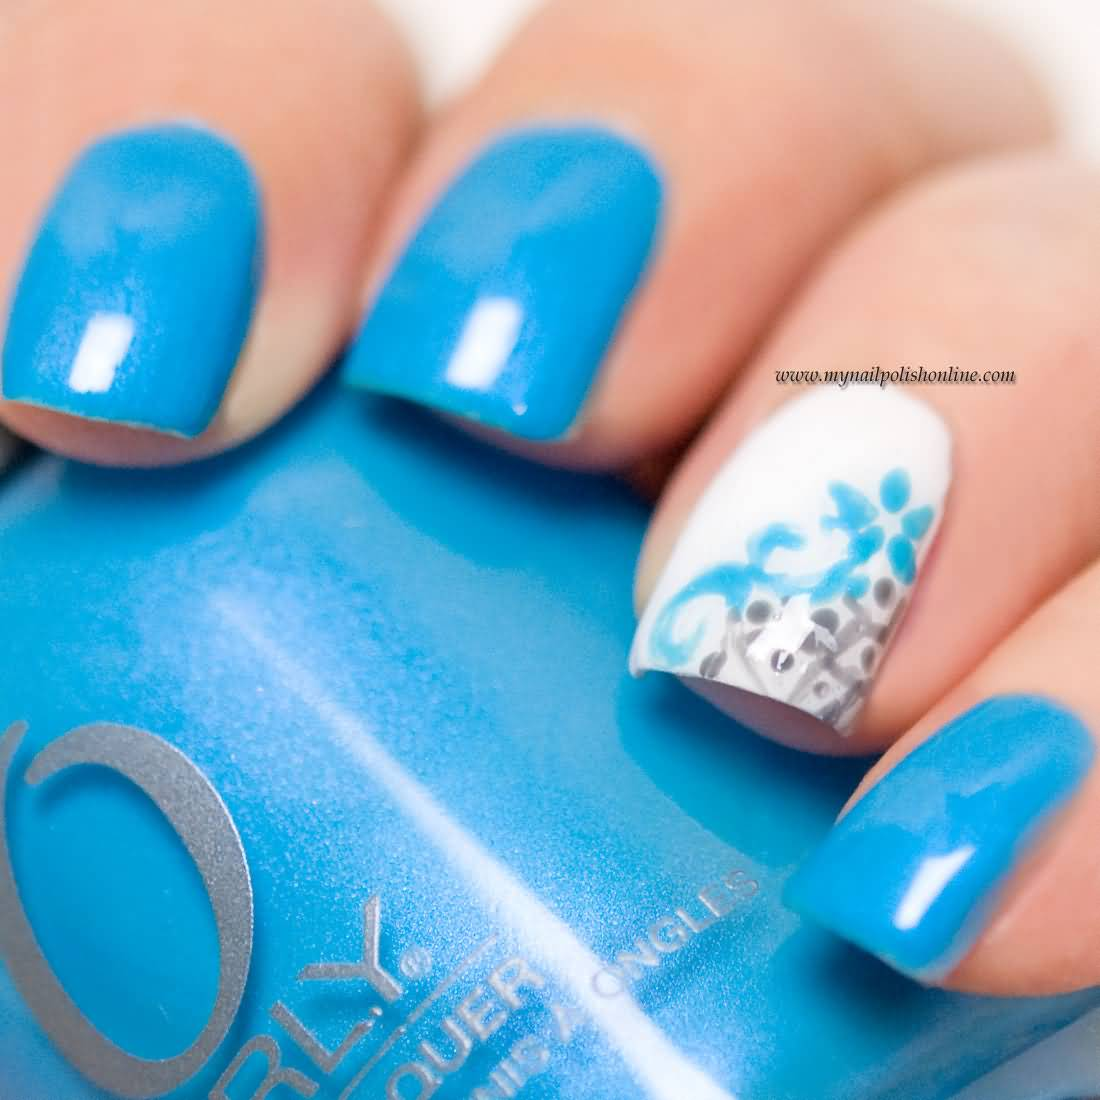 Incredible Sky Blue Nail Paint With Flower Accent Nail Art